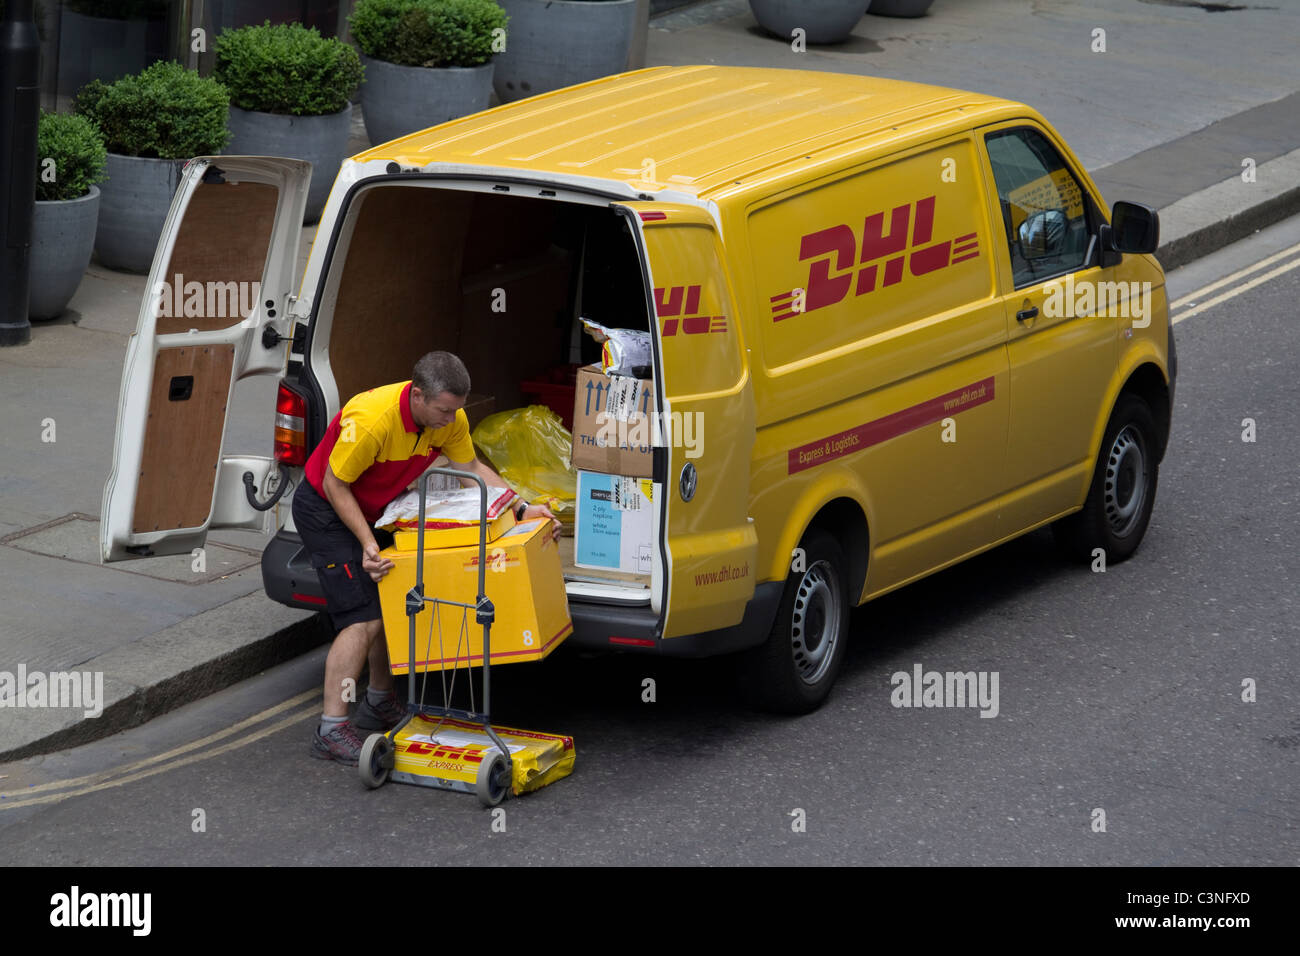 DHL delivery driver unloading van in City of London - Stock Image